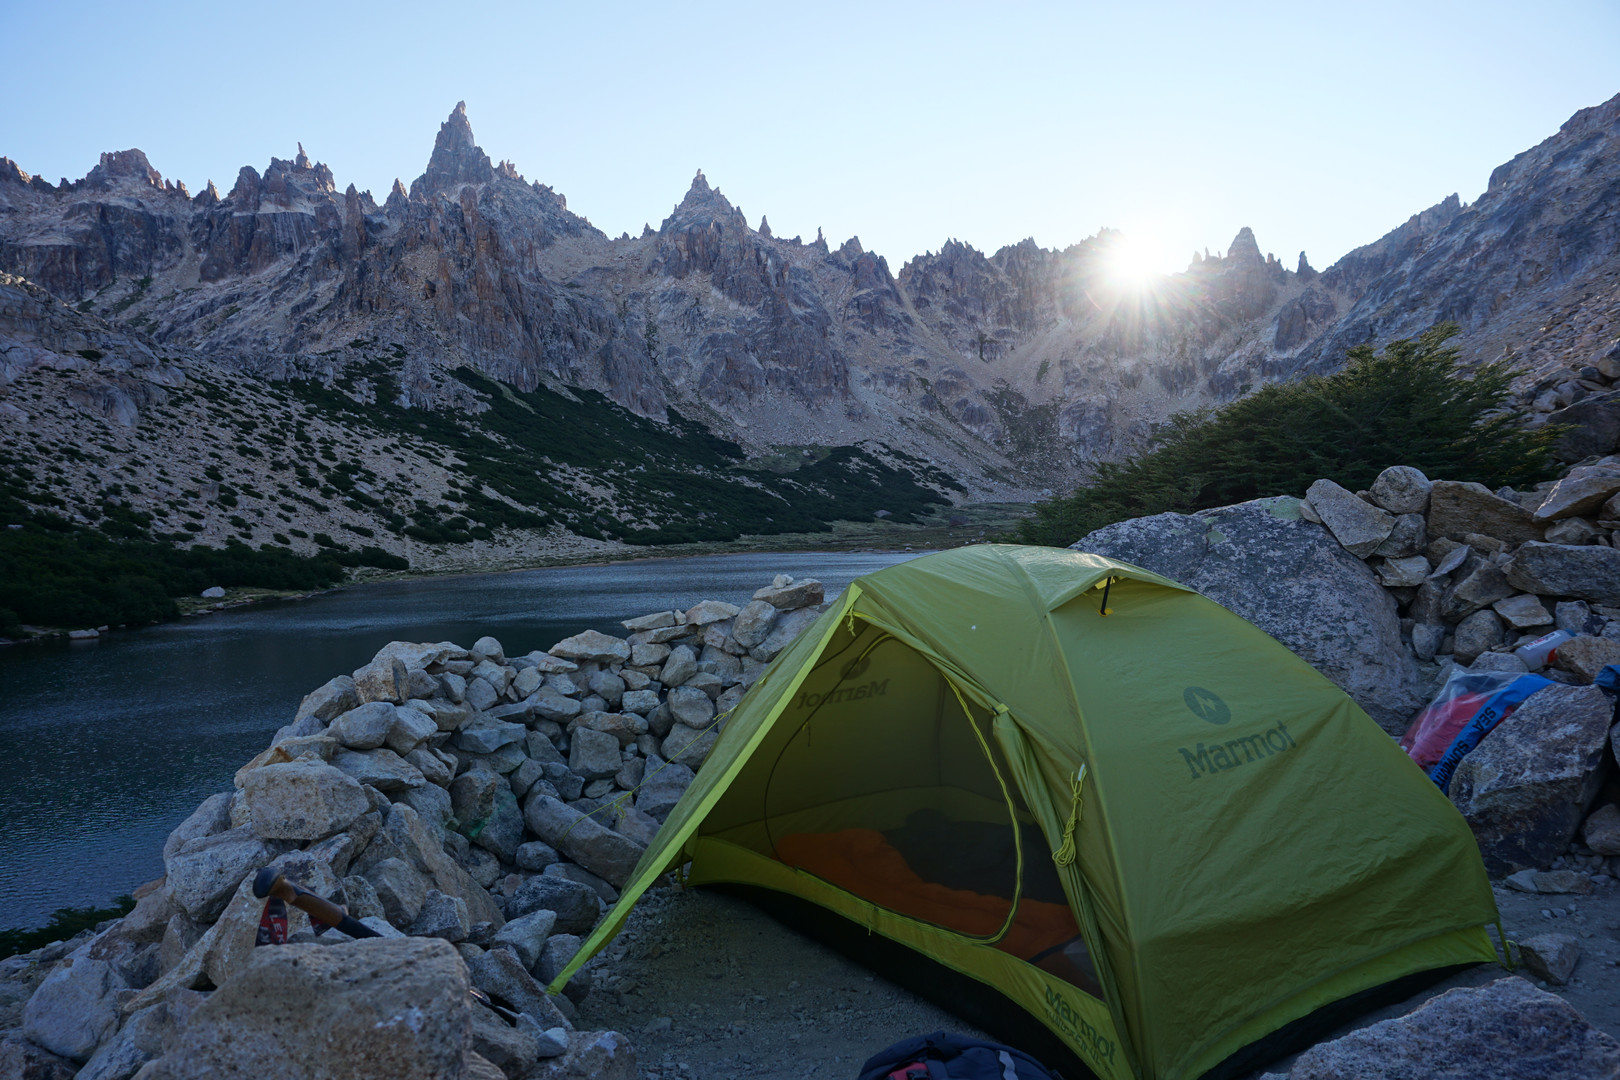 The tenting options beside the Refugio